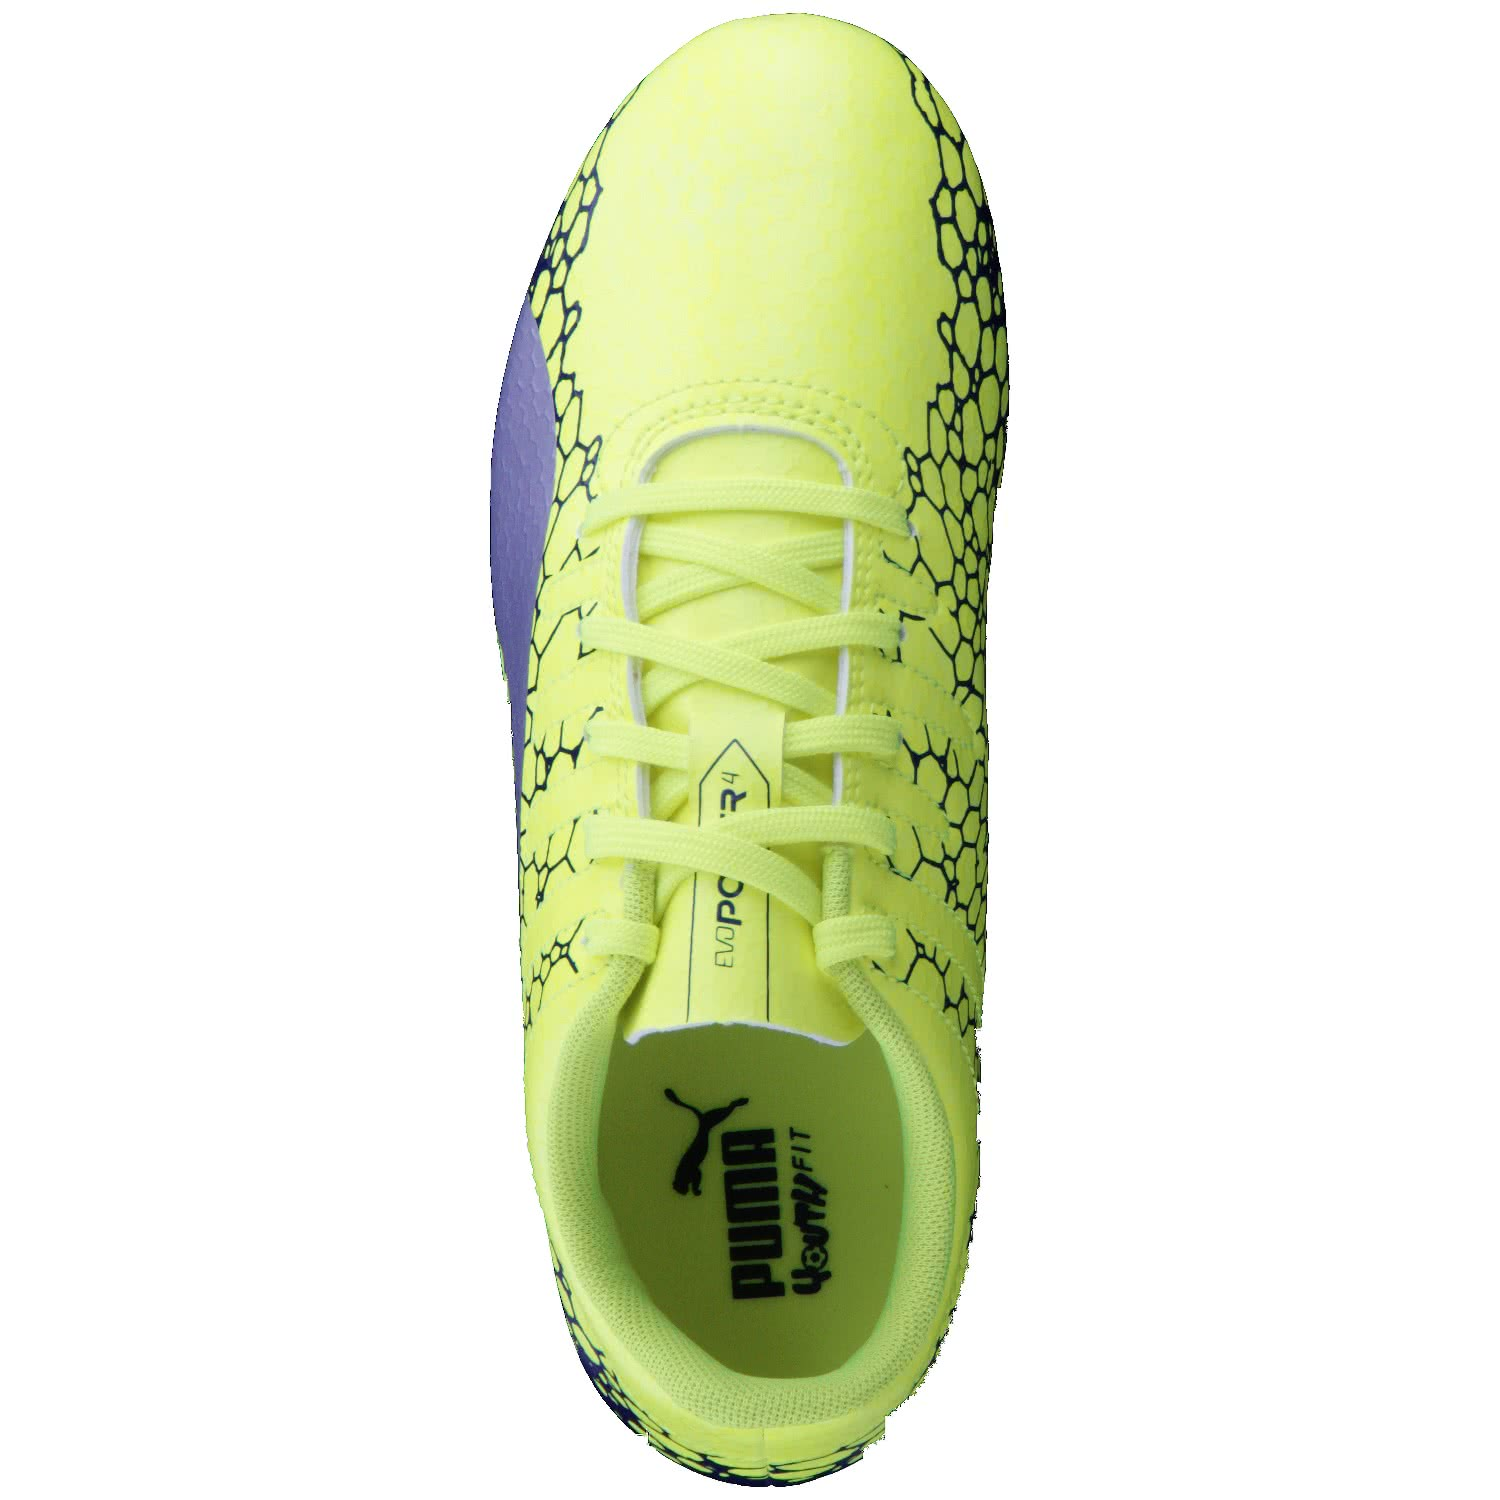 puma evopower vigor 4 kinder